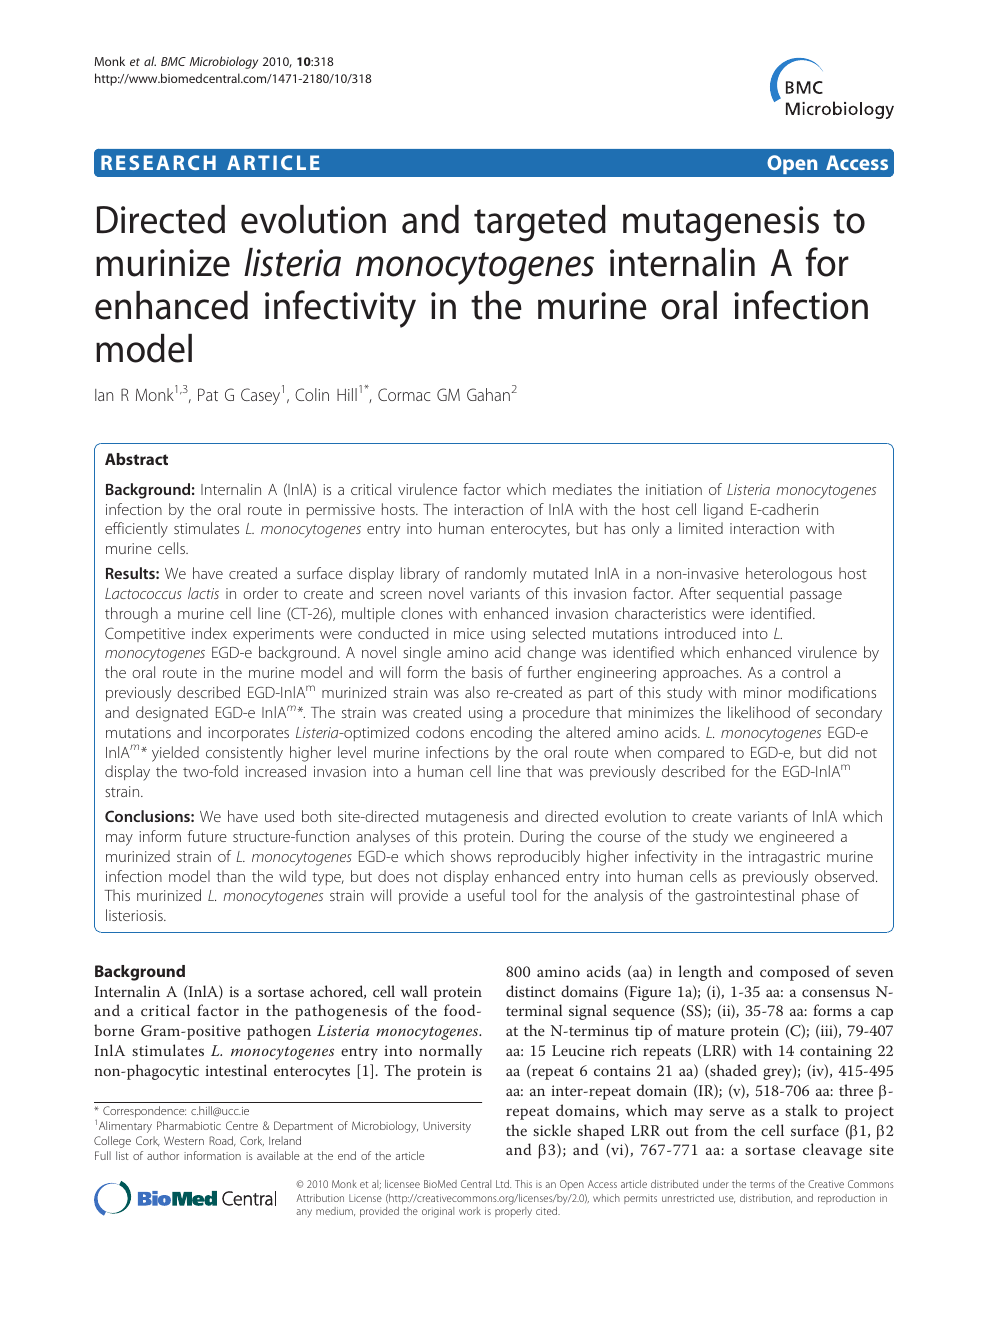 Directed Evolution And Targeted Mutagenesis To Murinize Listeria Monocytogenes Internalin A For Enhanced Infectivity In The Murine Oral Infection Model Topic Of Research Paper Biological Sciences Download Scholarly Article Pdf